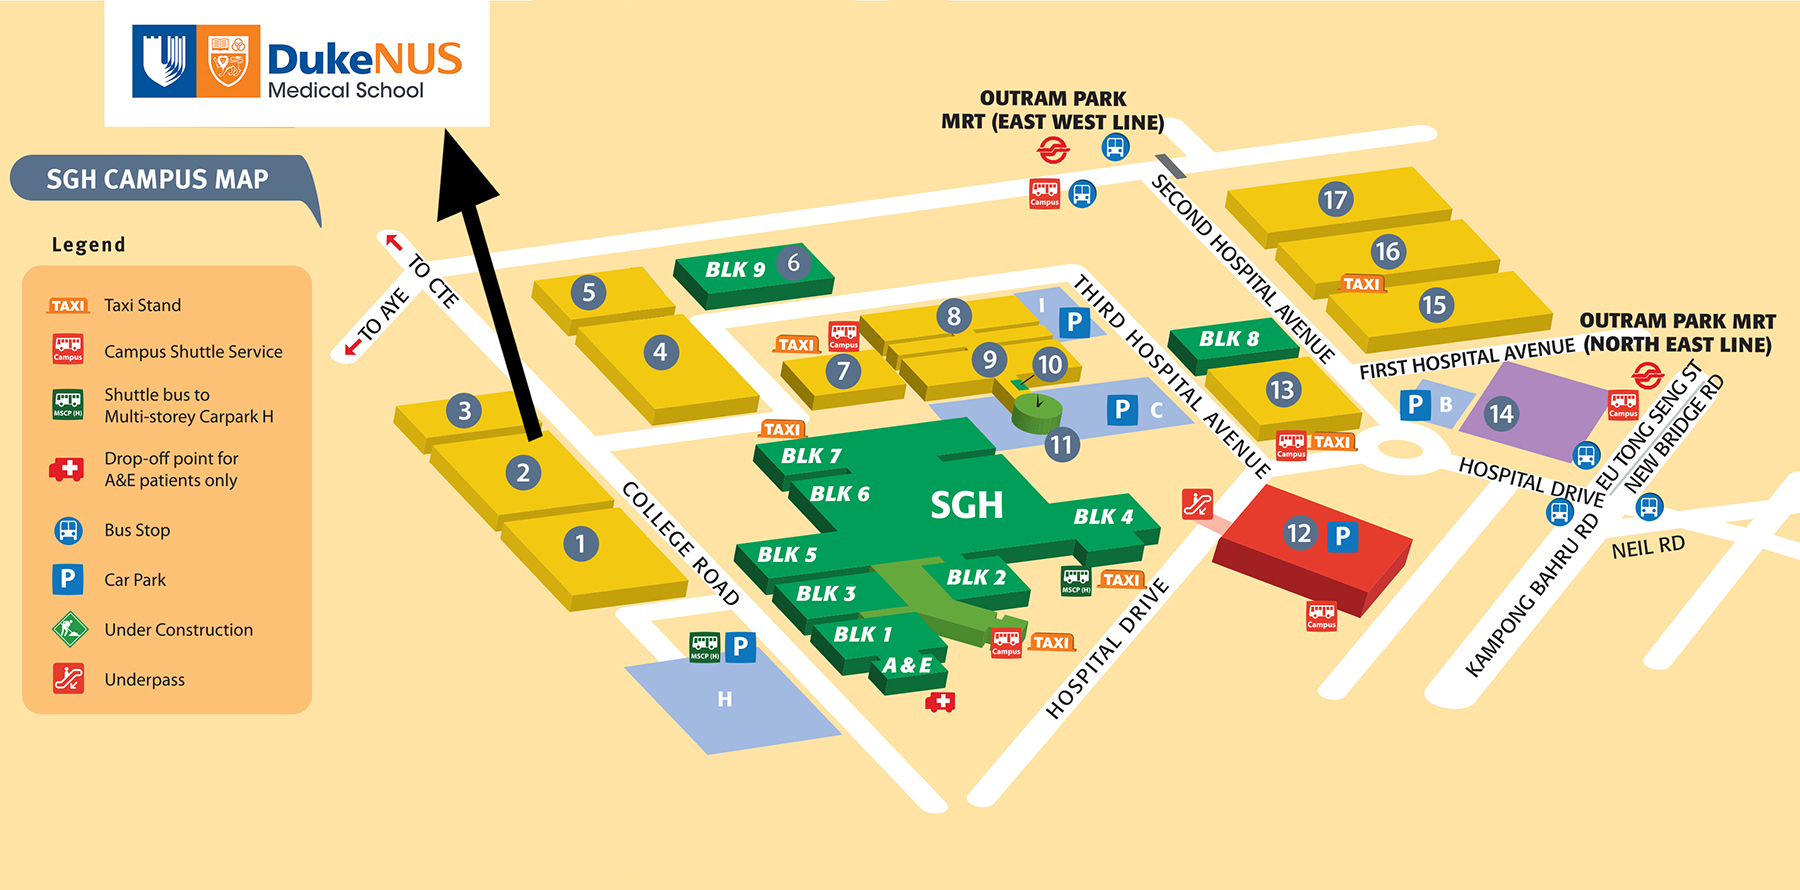 Duke NUS Location Map